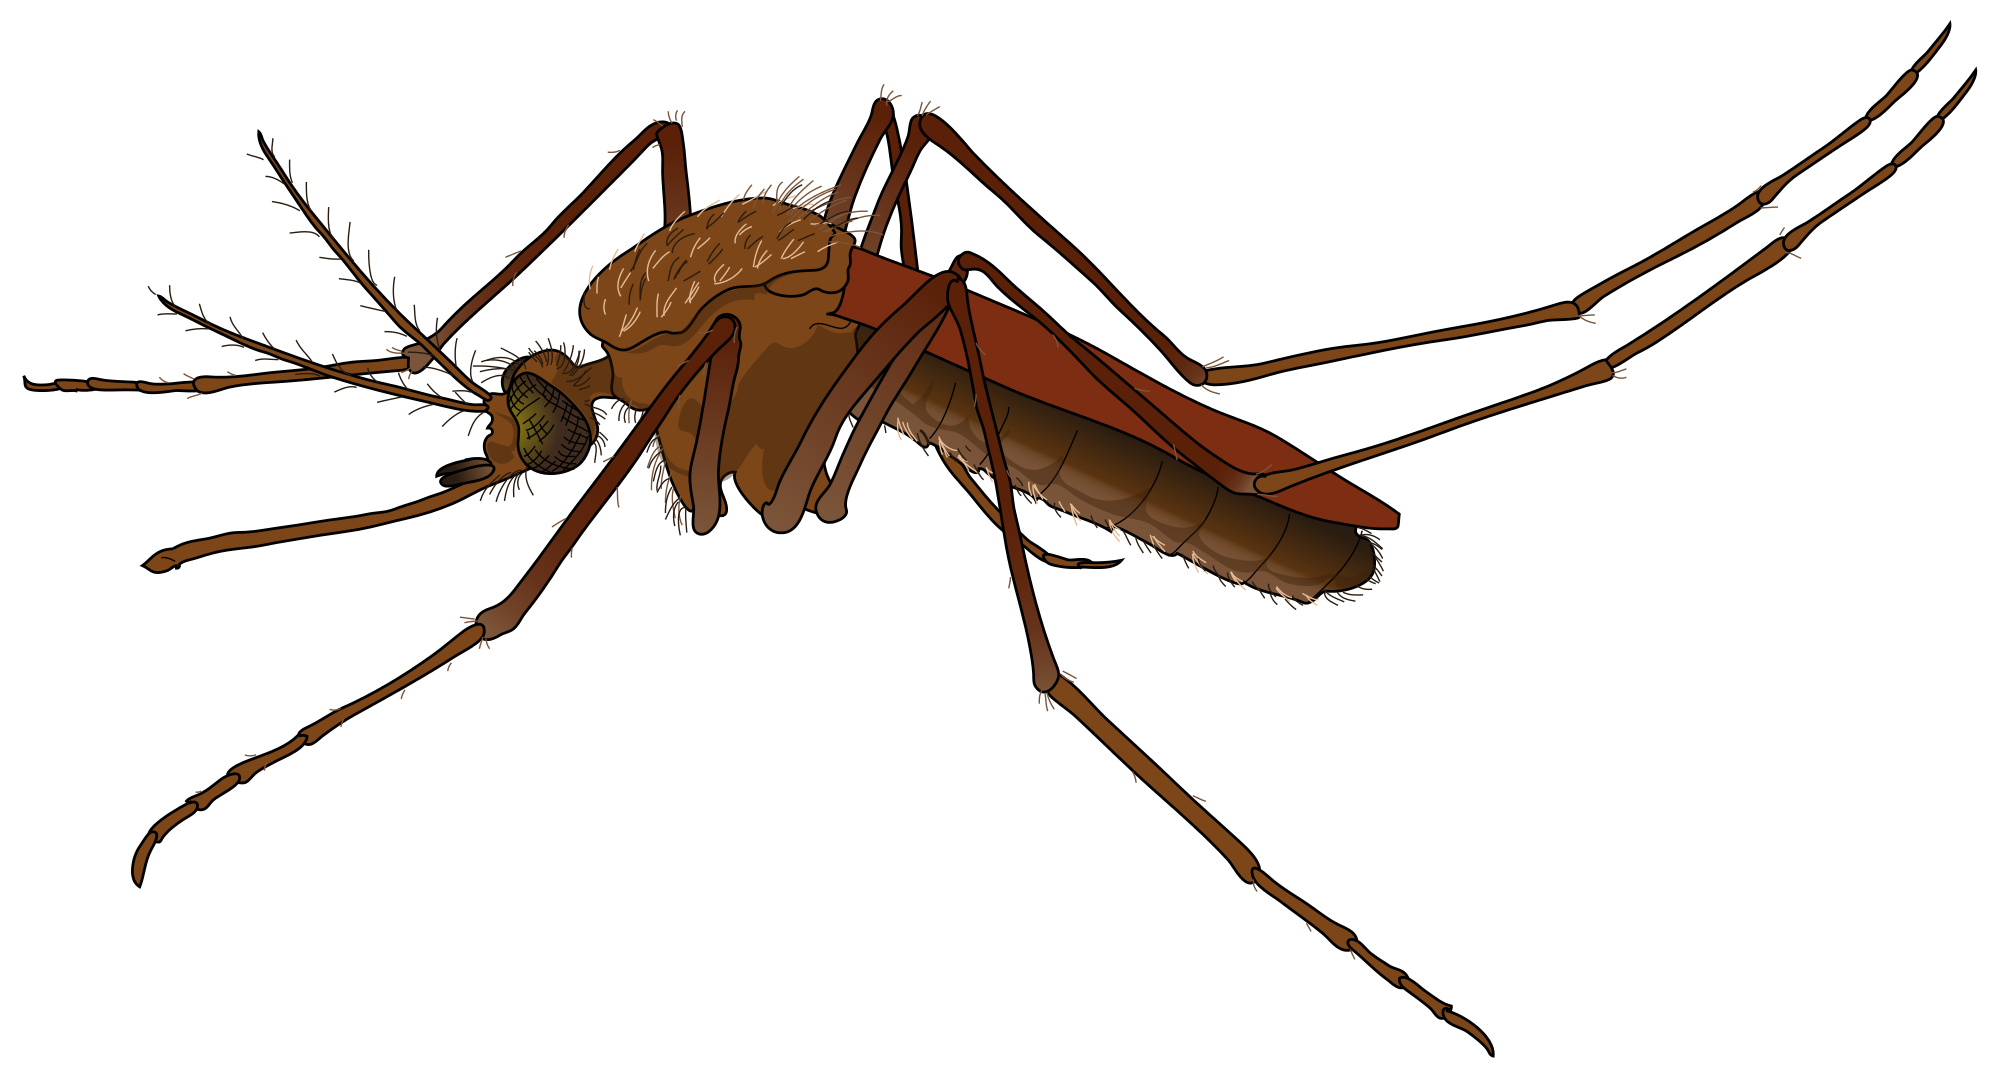 Mosquito clipart chikungunya. Png images free download